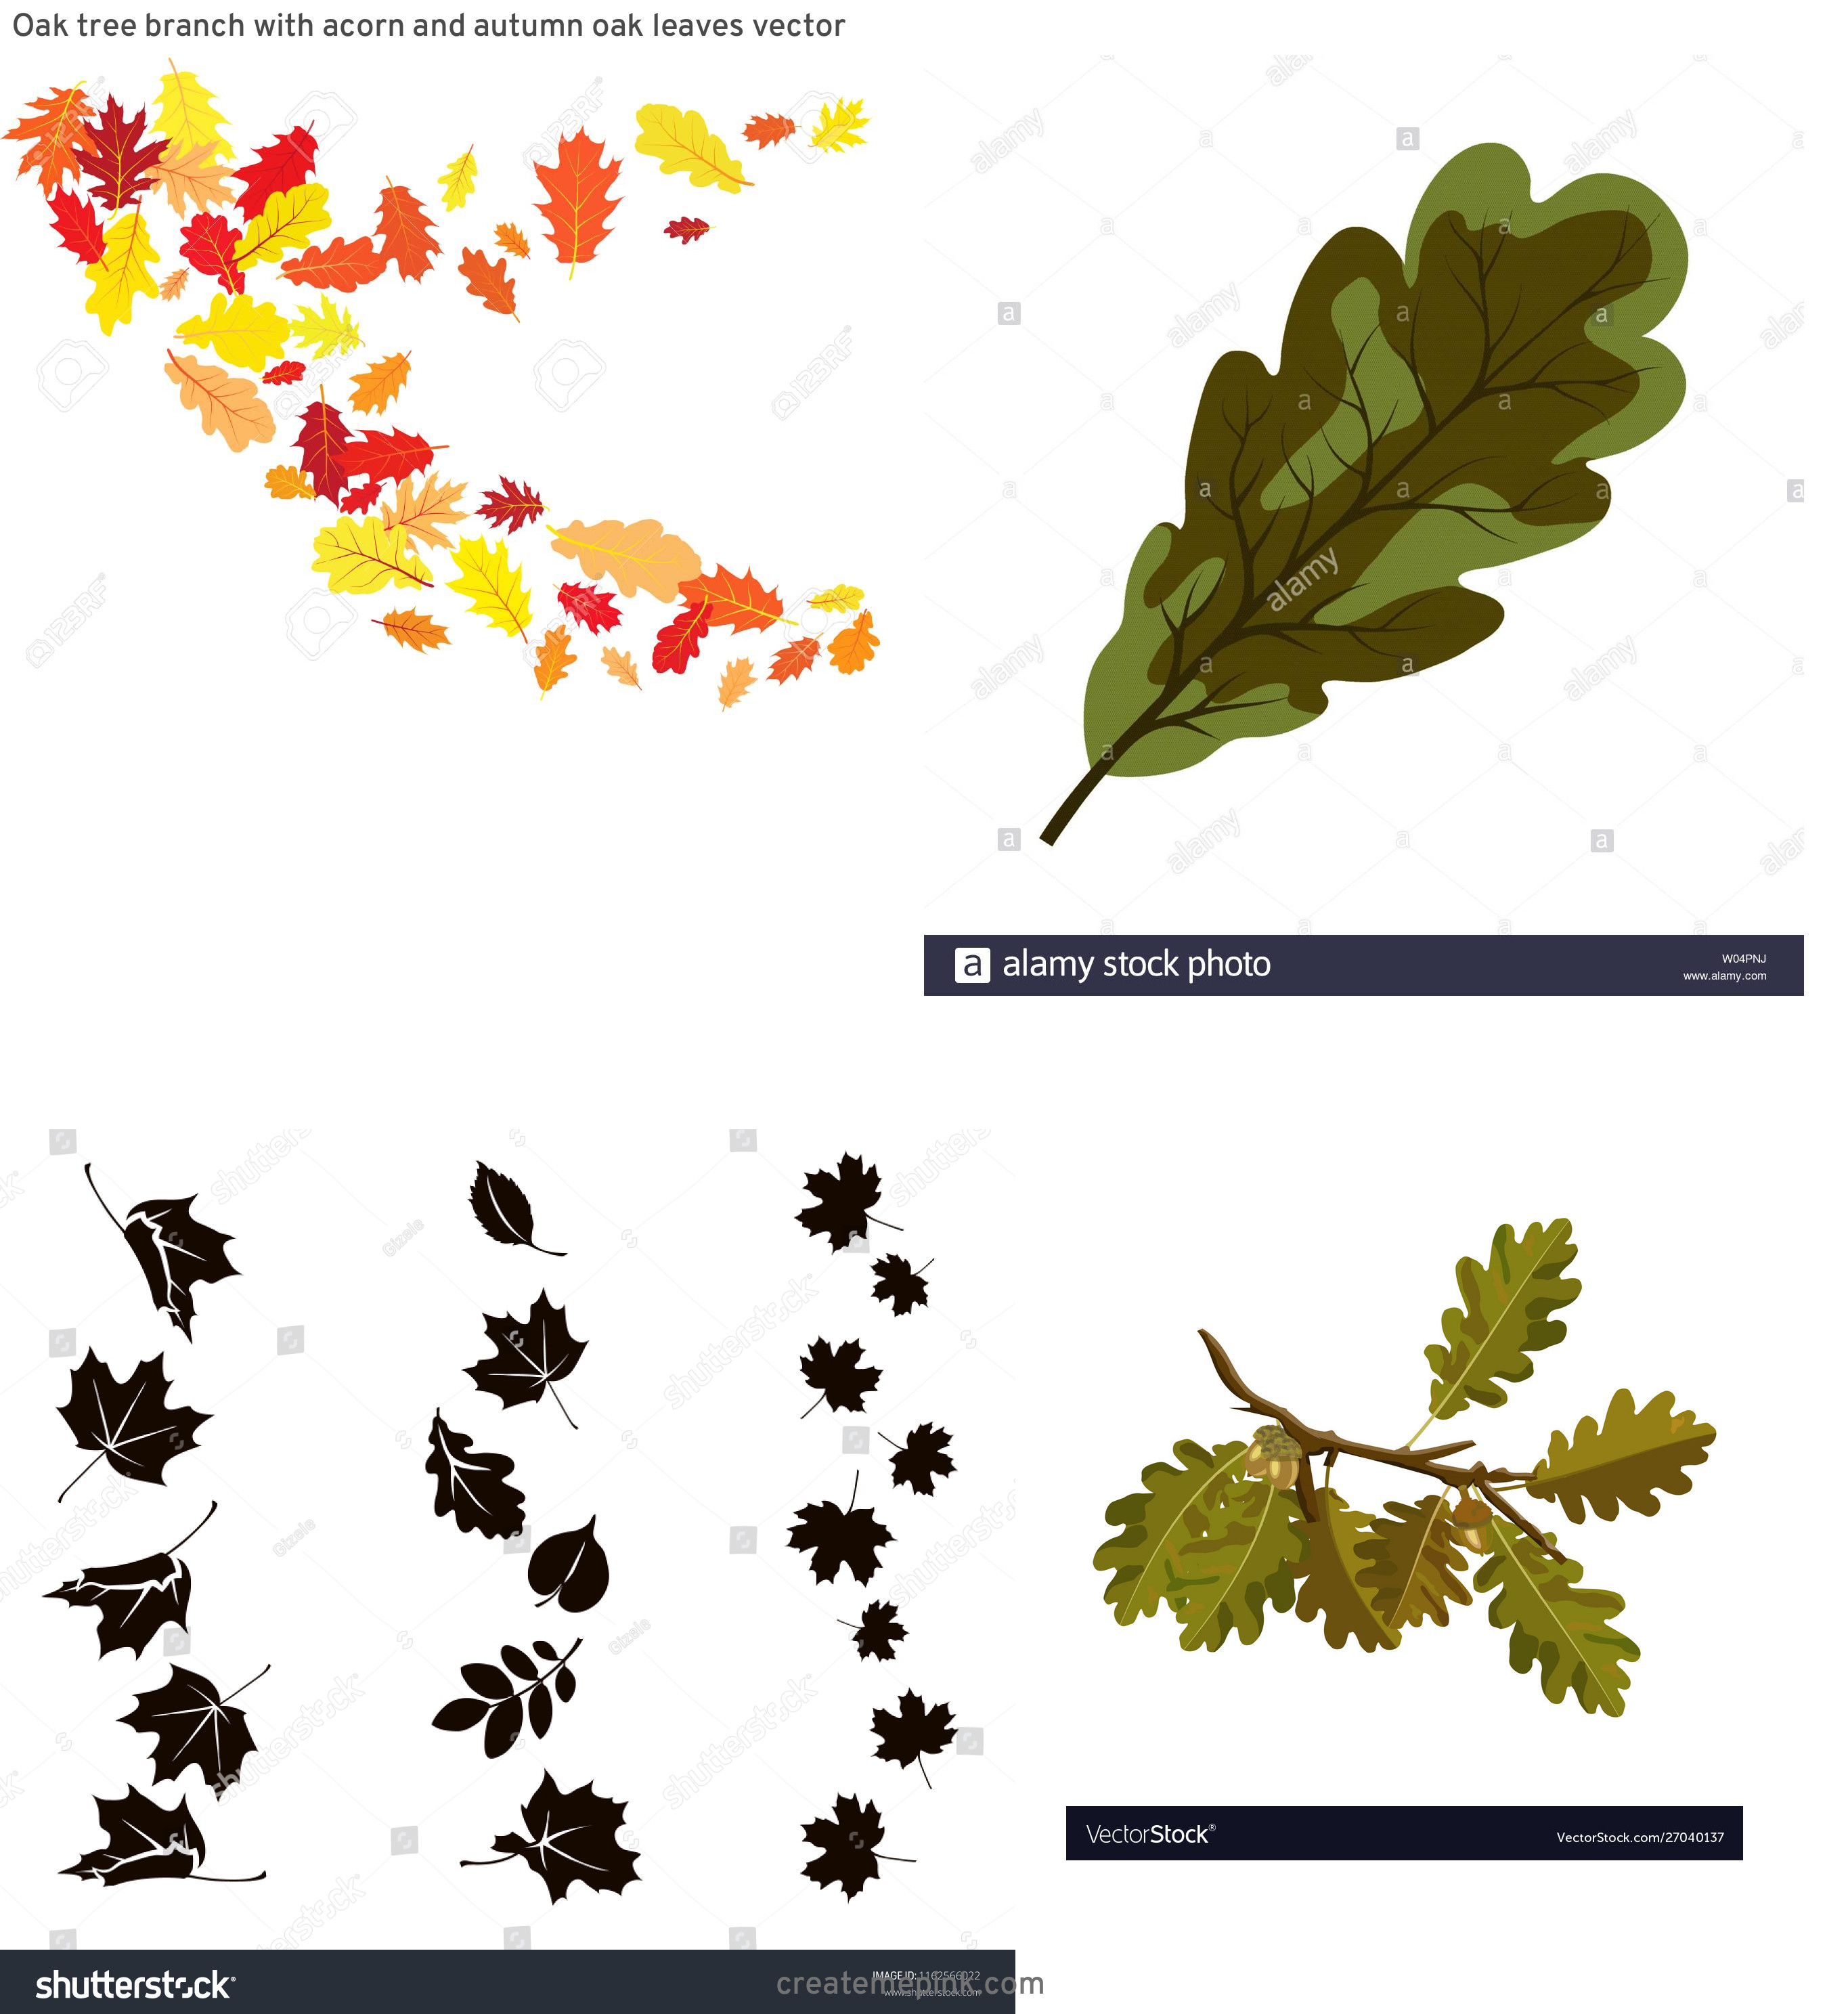 Falling Oak Leaves Vector: Oak Tree Branch With Acorn And Autumn Oak Leaves Vector